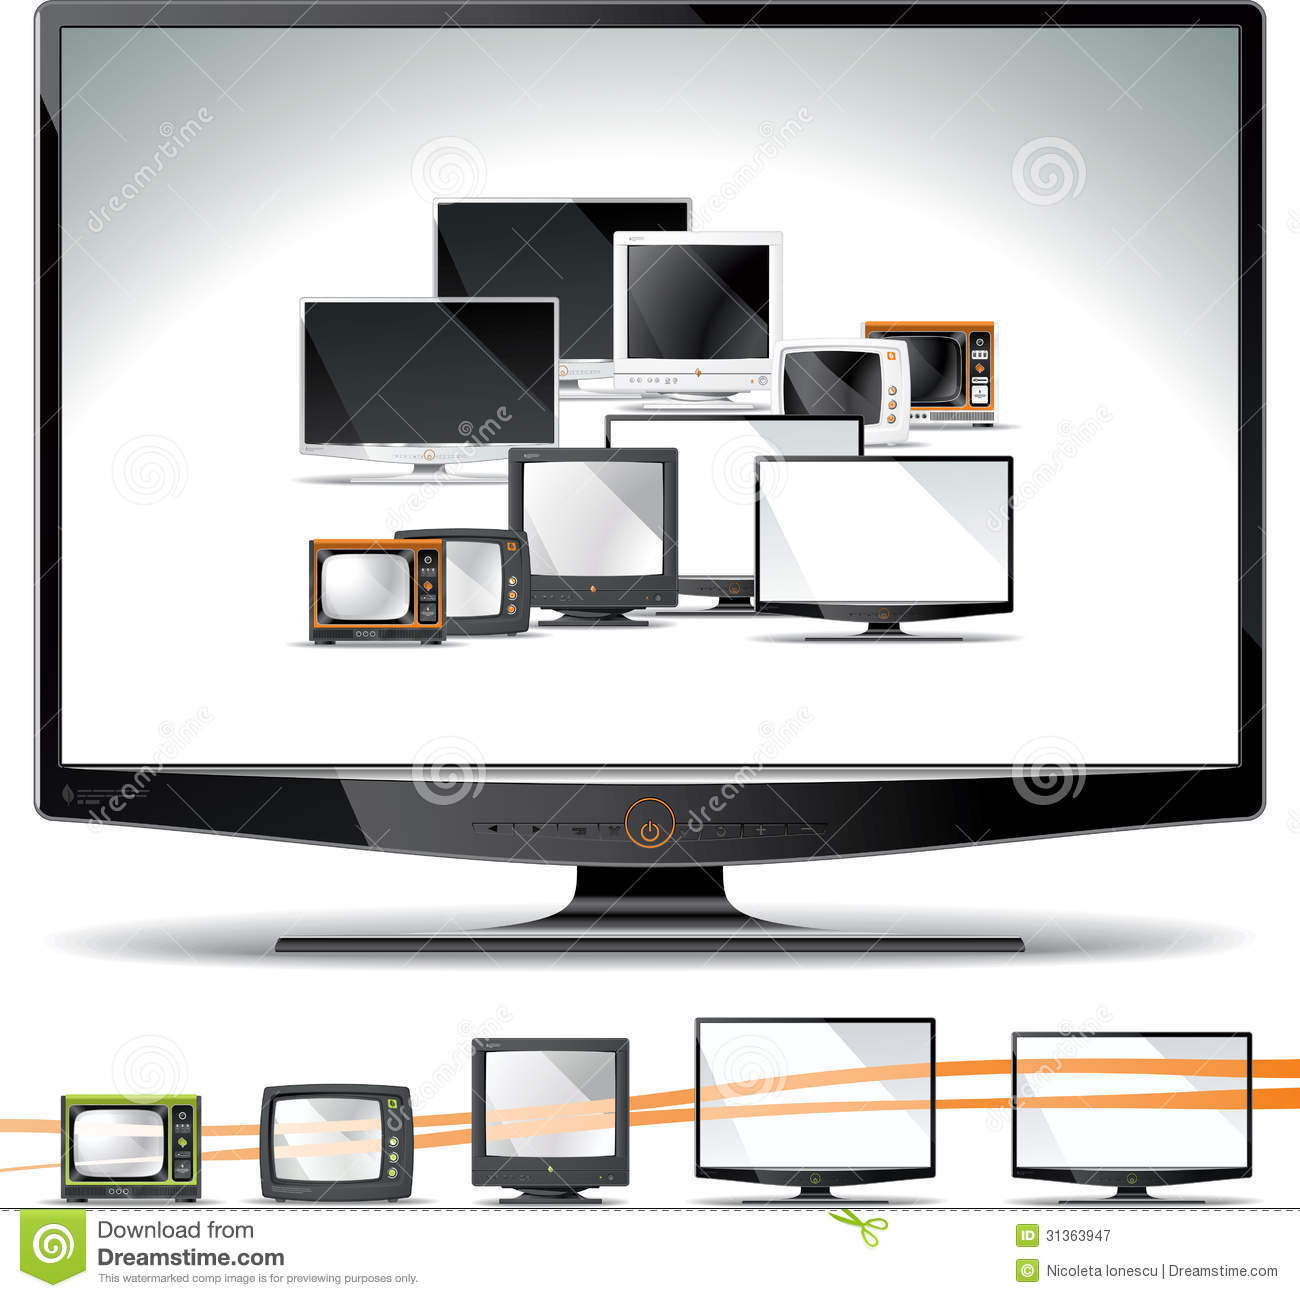 lcd led crt Television history and facts – electromechanical tv to 3d tv – crt, lcd, led,  plasma, hdtv and 3d tv history and facts 19 comments.